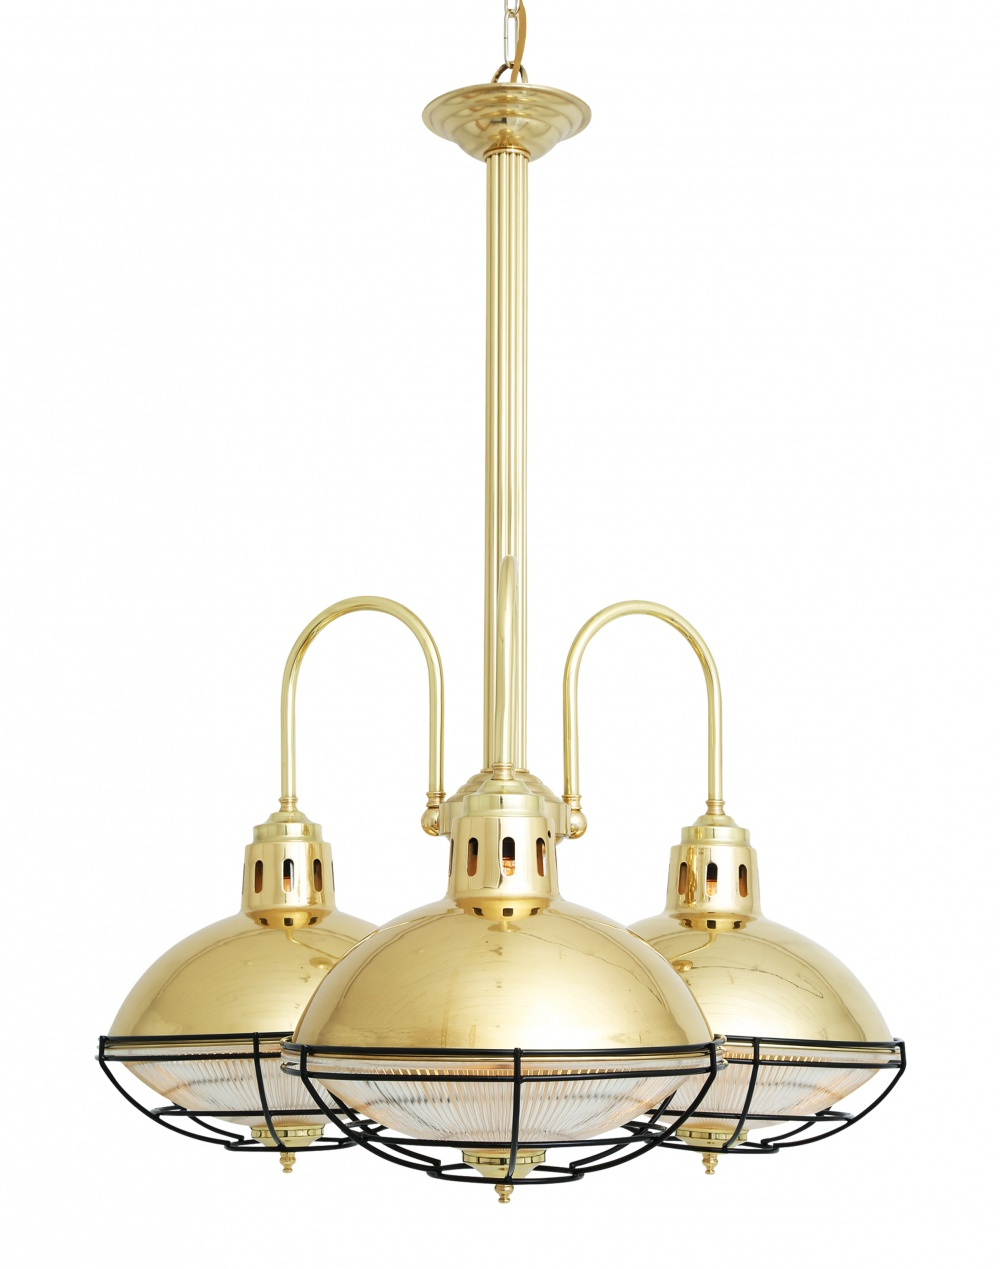 Marlow Cage Lamp Industrial Chandelier